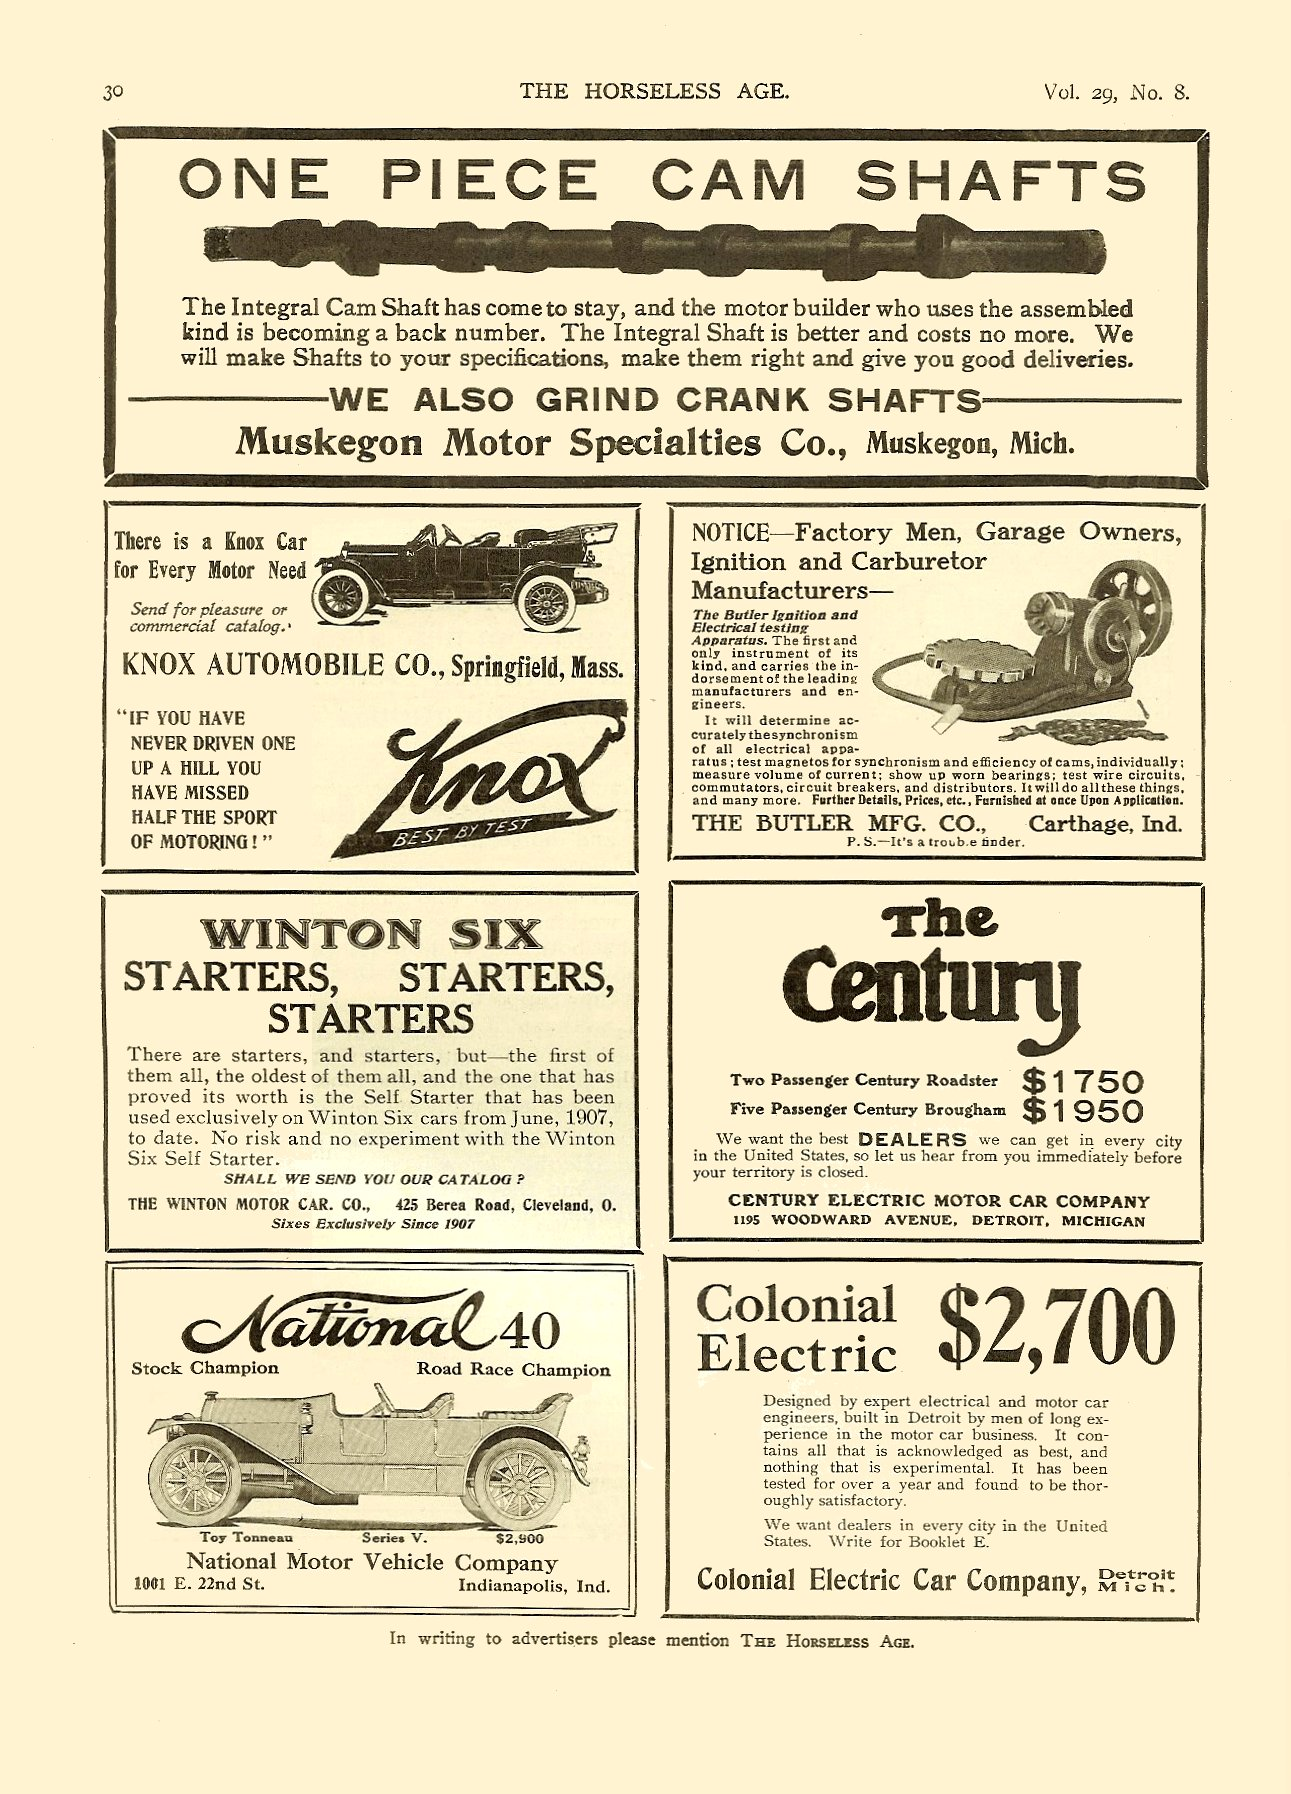 1912 2 21 NATIONAL 40 THE HORSELESS AGE Vol. 29, No. 8 February 21, 1912 9″x12″ page 30